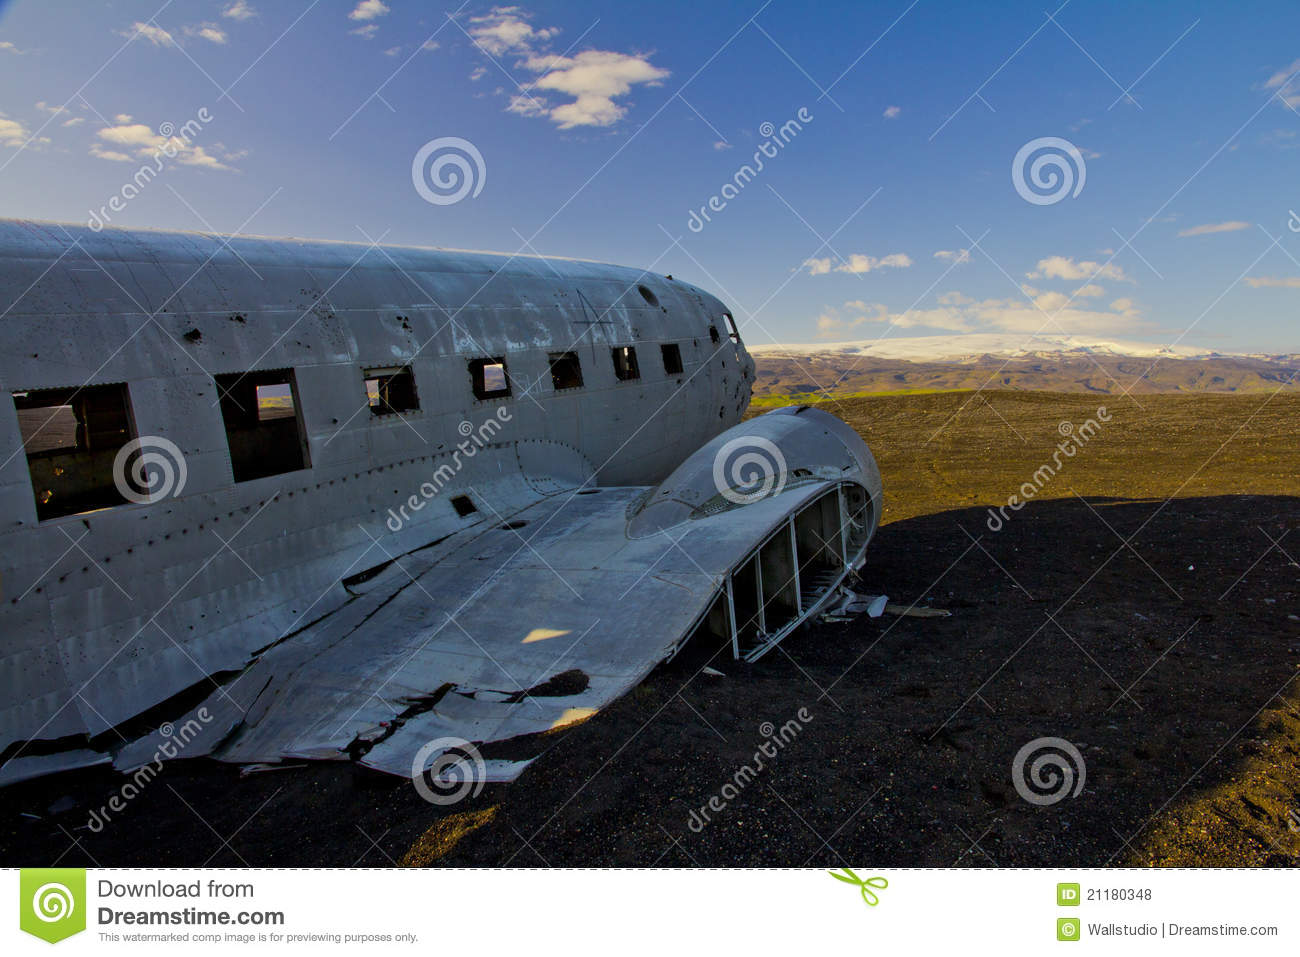 US navy plane in south Iceland